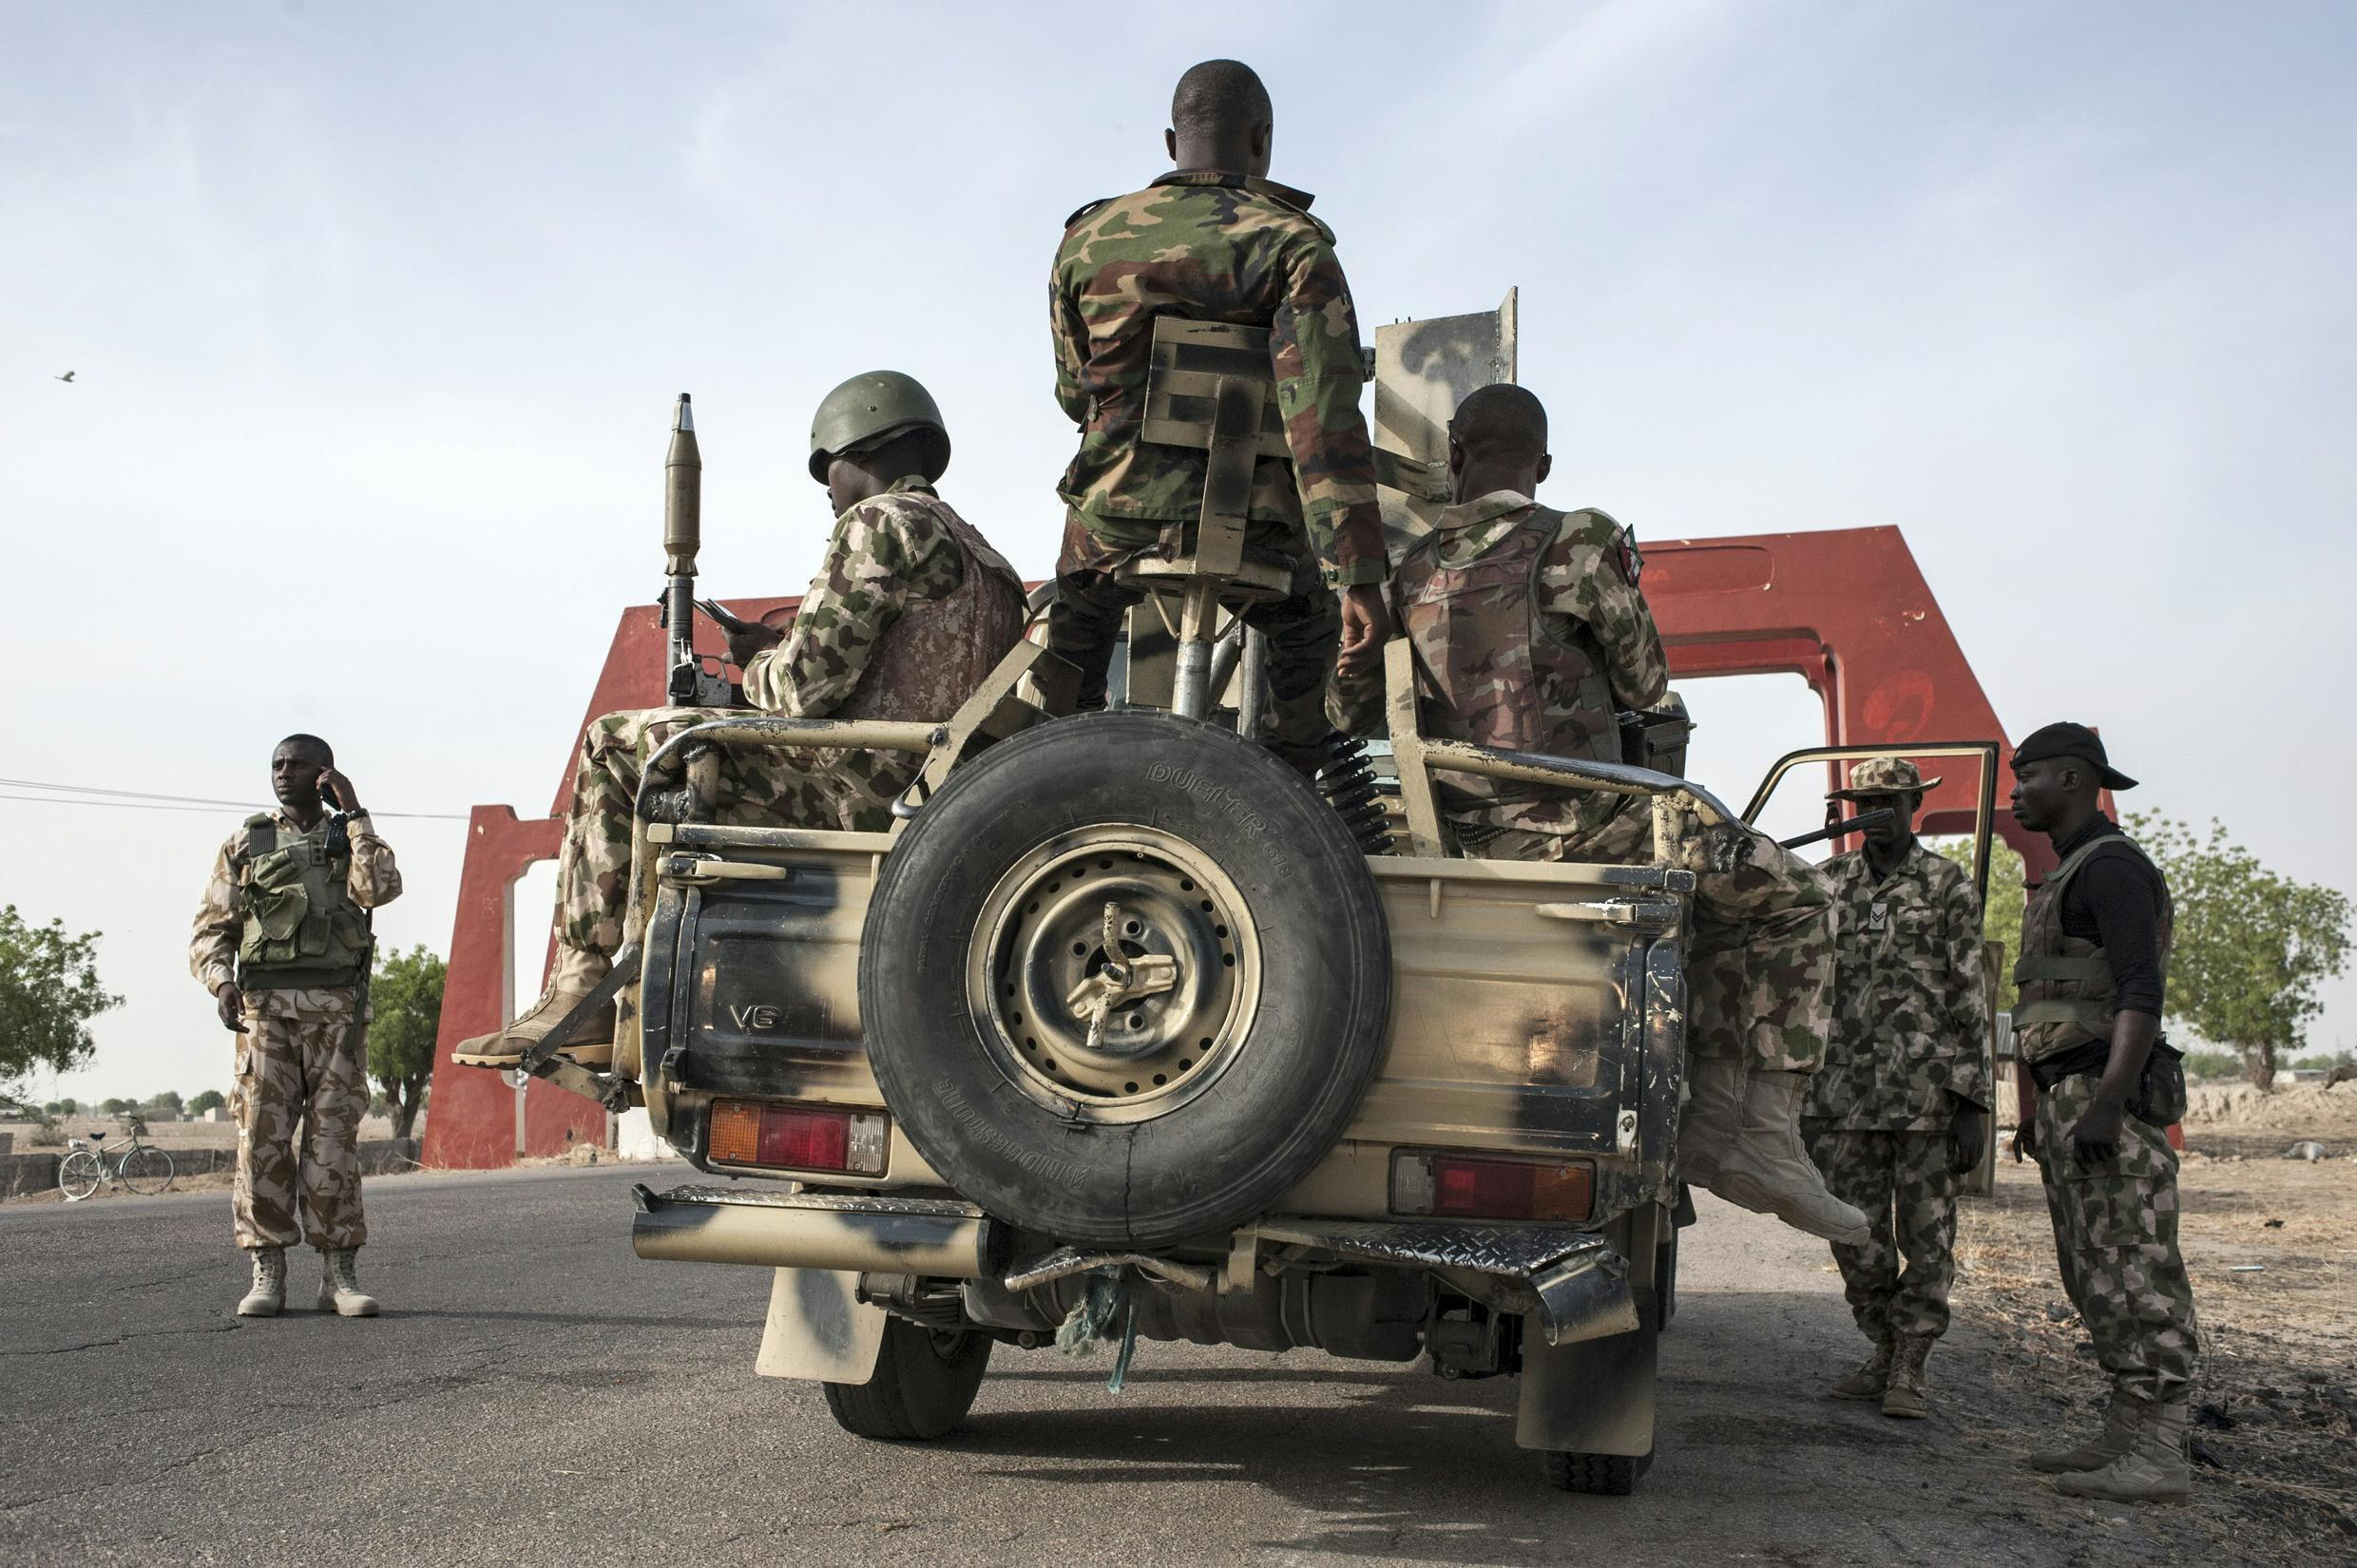 For more than a decade Nigeria's military has battled Islamist insurgencies that have devastated the northeast, killing at least 36,000 people and displacing more than two million